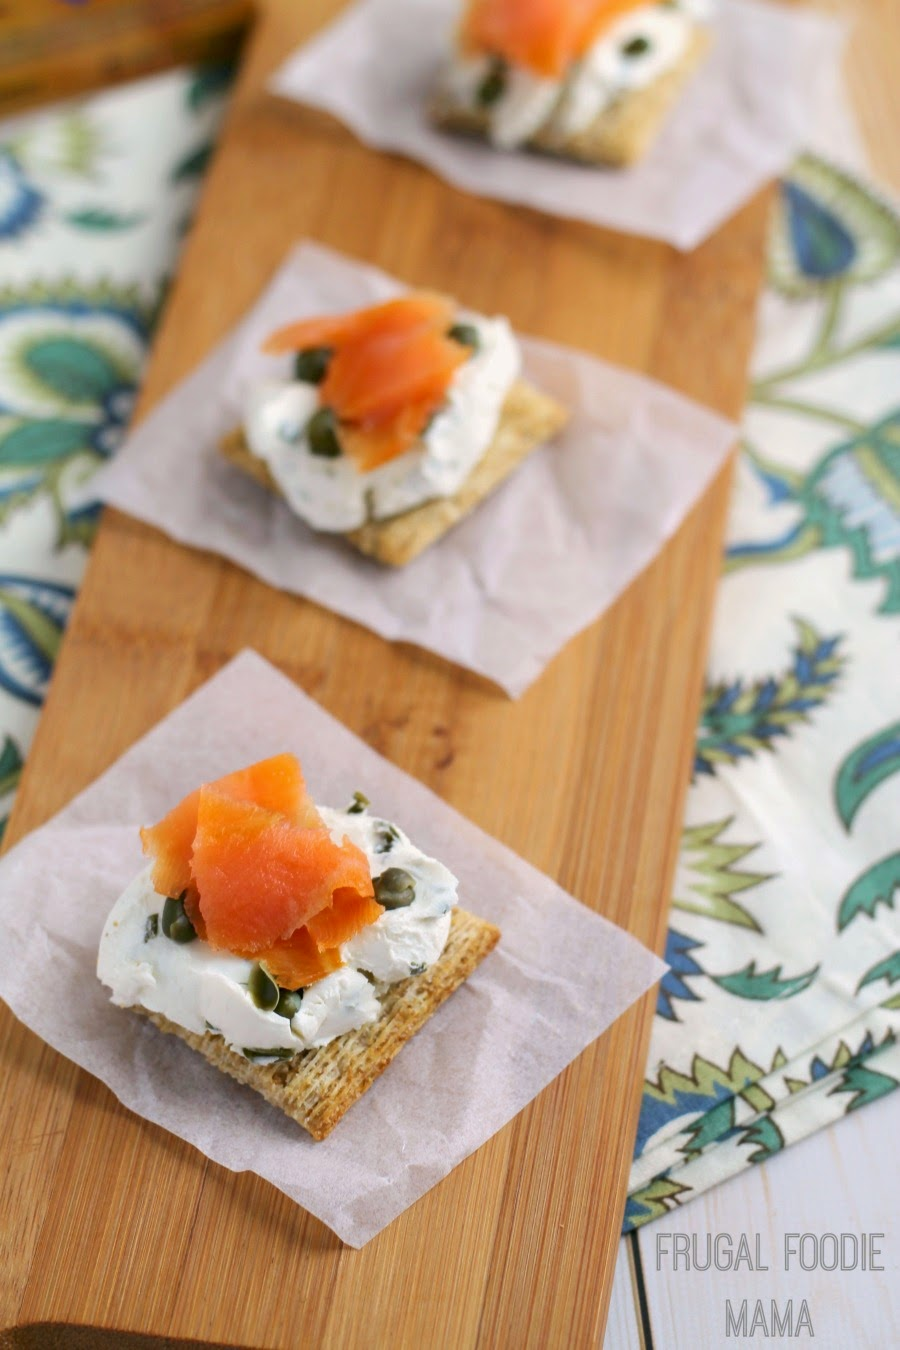 frugal foodie mama lox stox triscuit